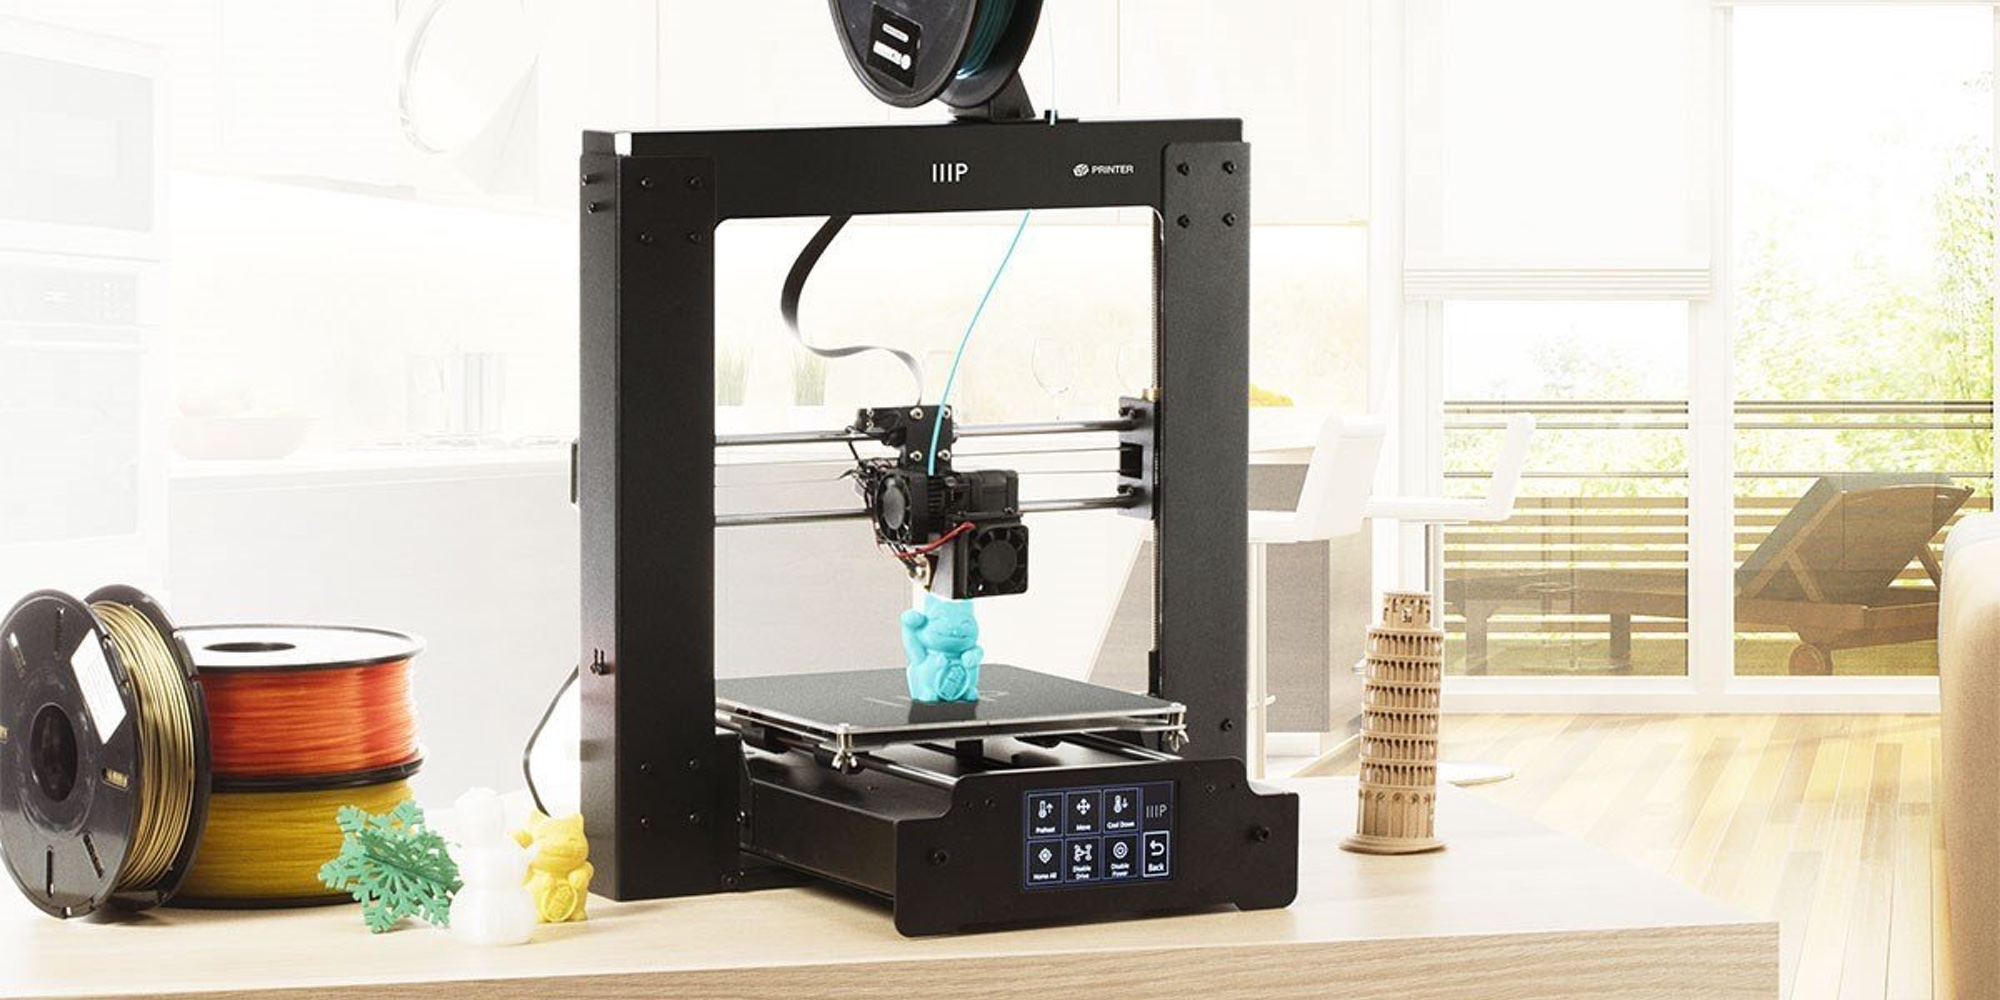 Monoprice's Maker Select Plus 3D Printer falls to new Amazon all-time low at $290 (Save $100)